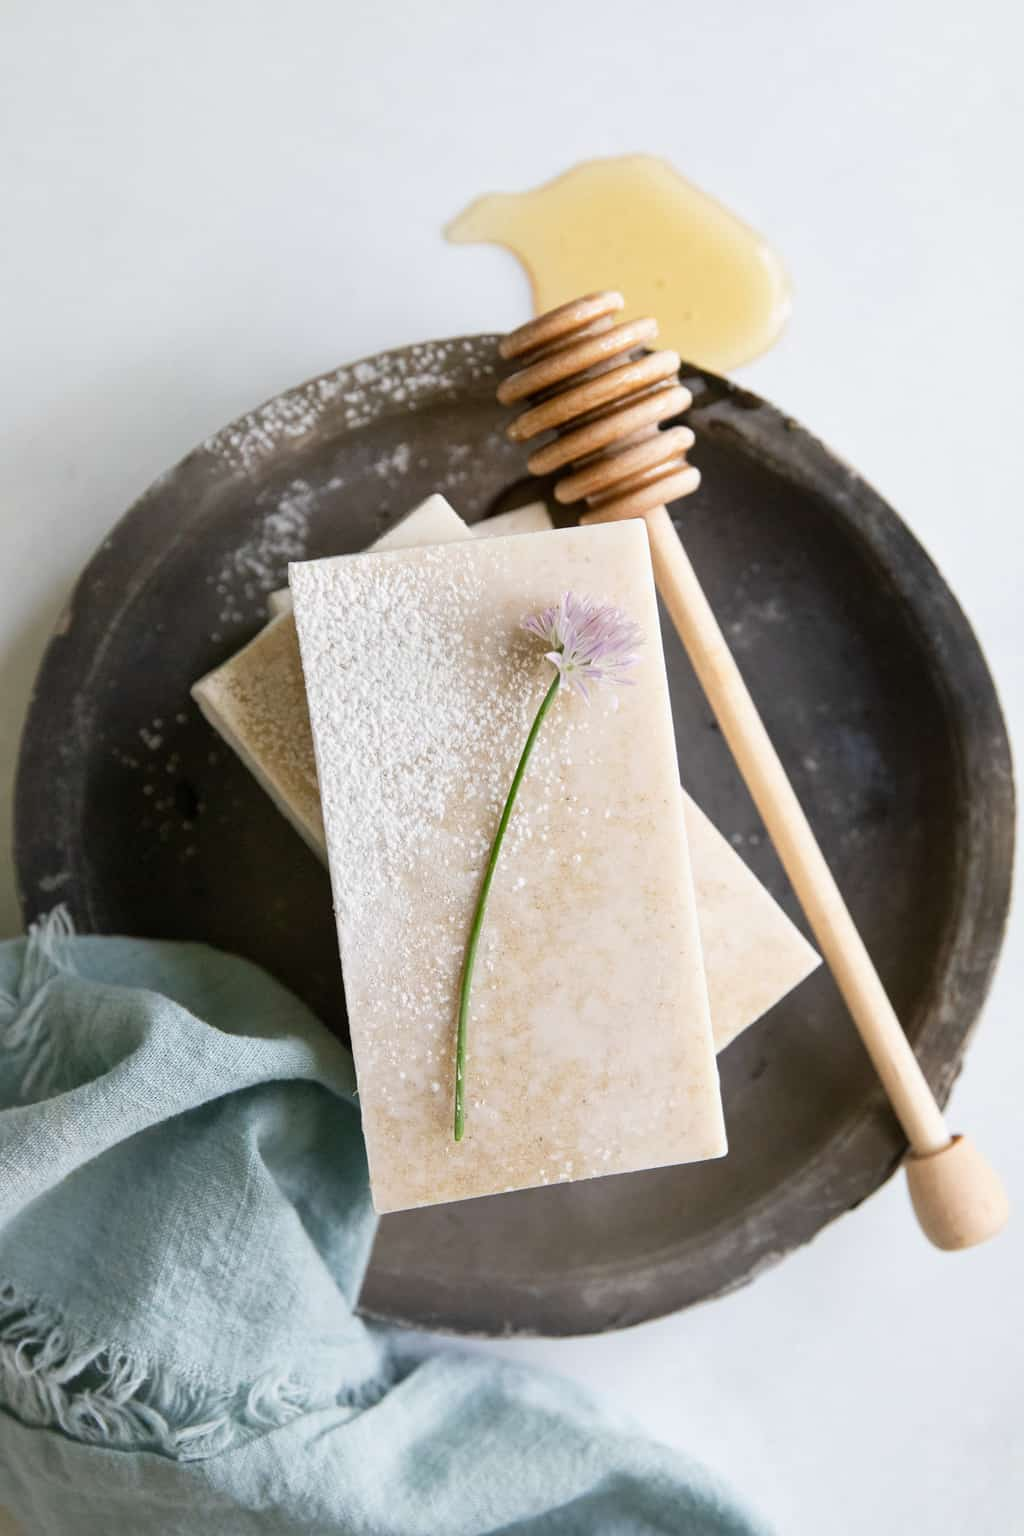 With a hydrating combination of ingredients to heal dry, irritated and sensitive skin, this DIY goat milk soap is just what you need this winter.